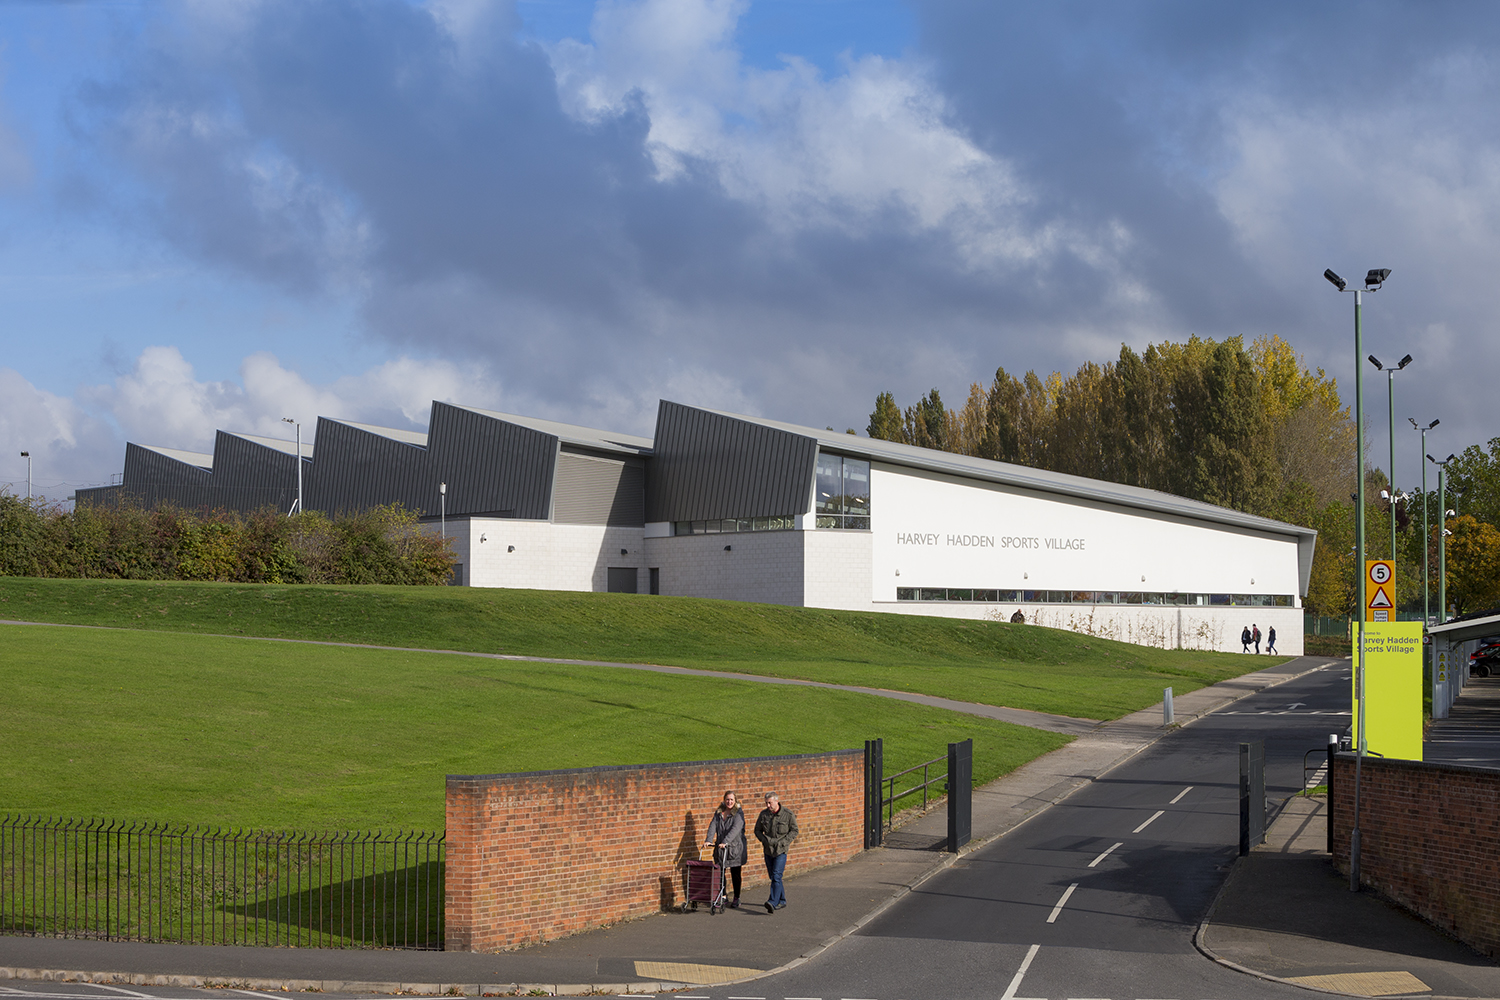 Harvey Hadden Sports Village Nottingham Furness Partnership